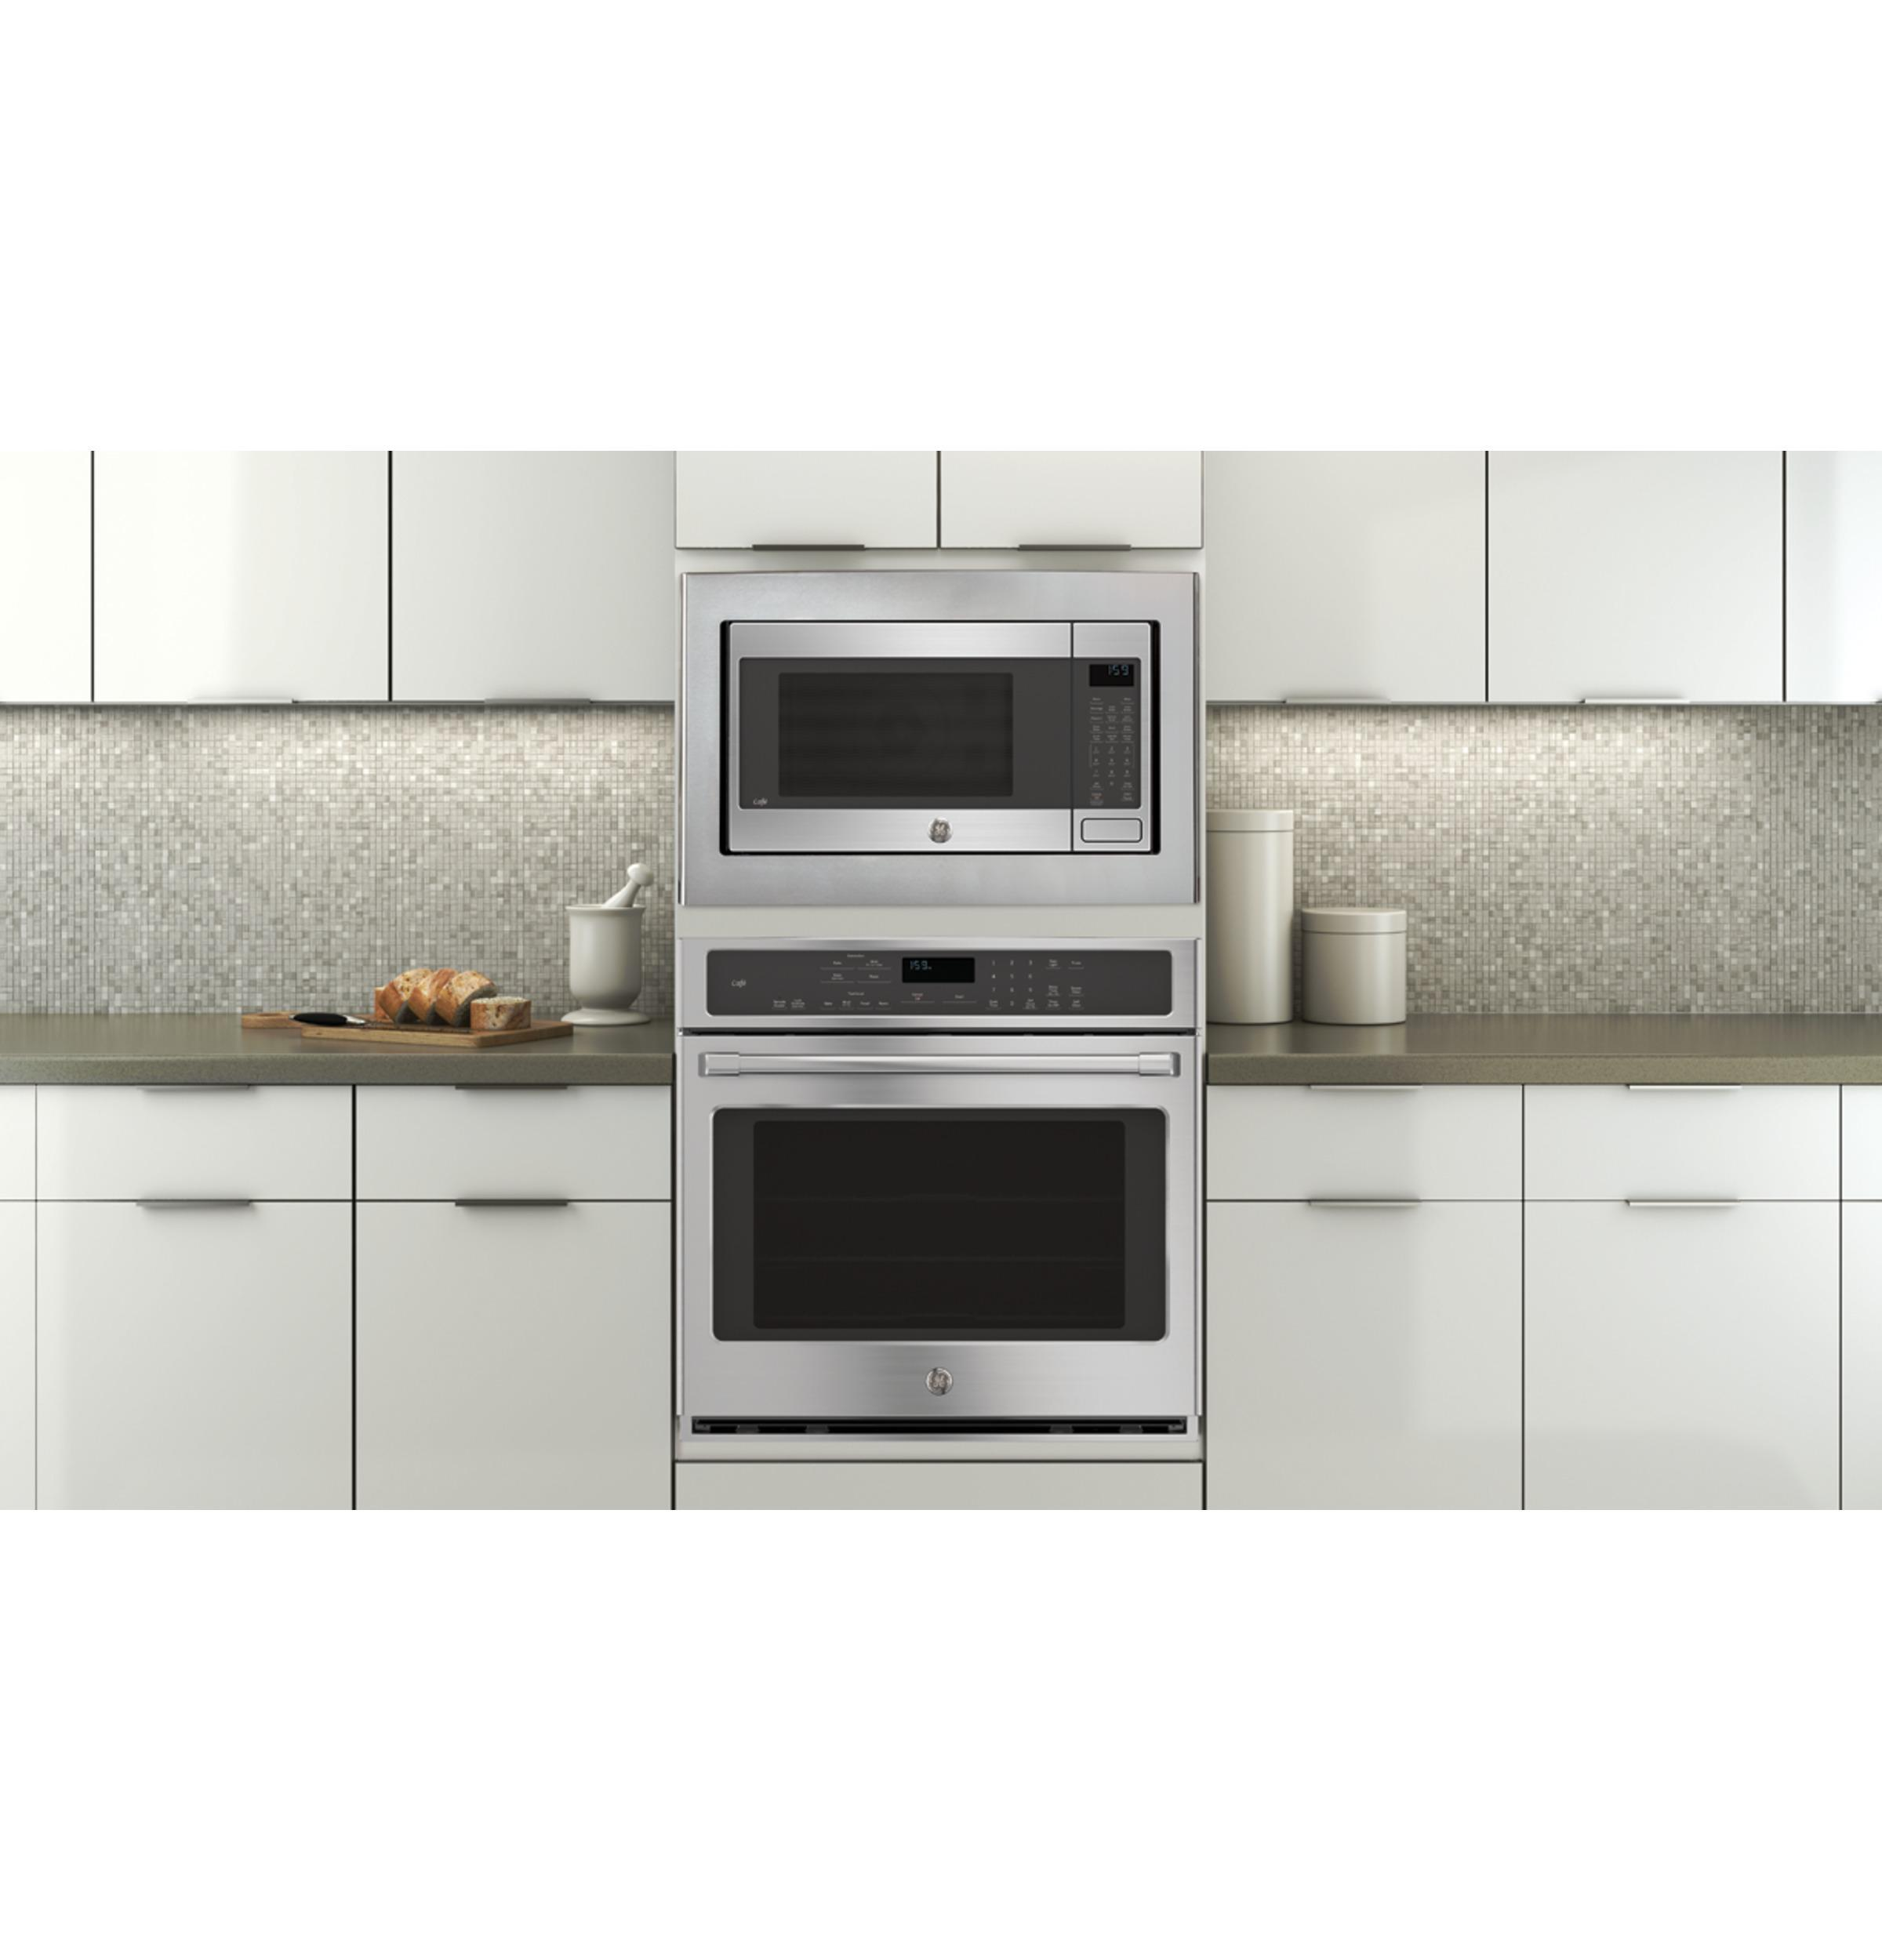 GE Cafe CT9050SHSS 30 Single Electric Wall Oven with 10-Pass Bake Element in Stainless Steel.